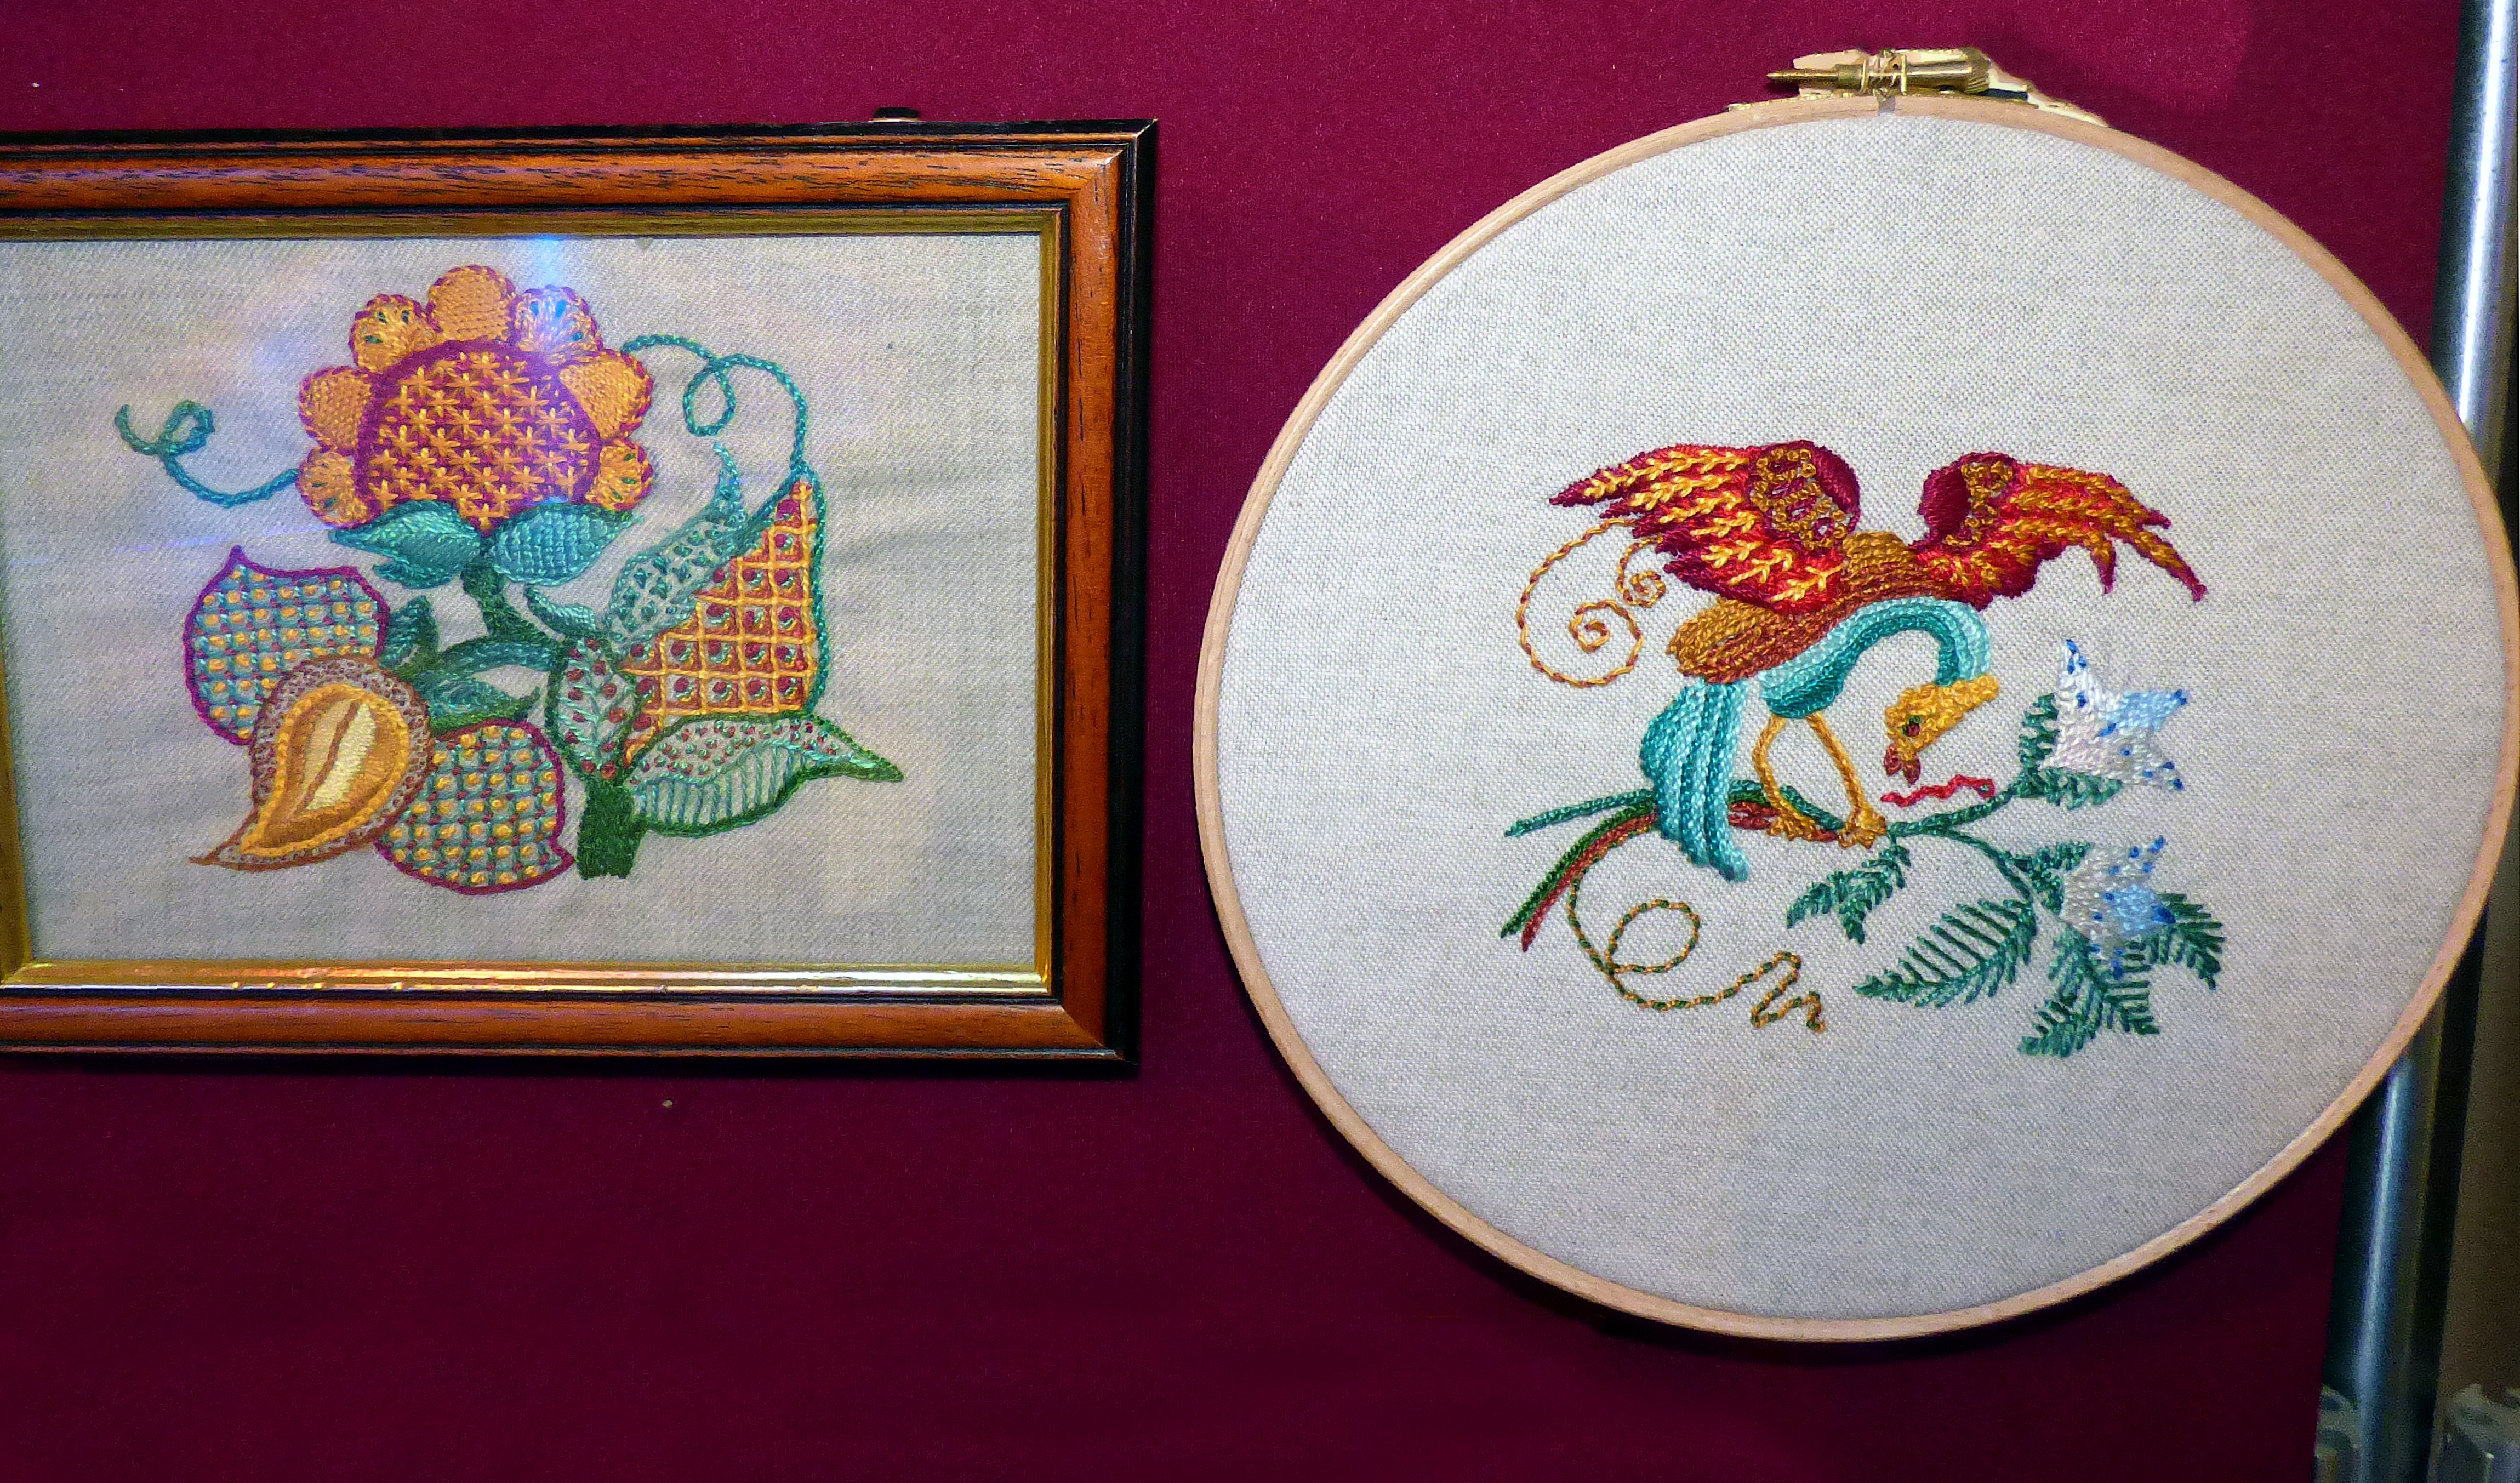 CREWELWORK, at Embroidery for Pleasure exhibition, Liverpool Metropolitan Cathedral 2016